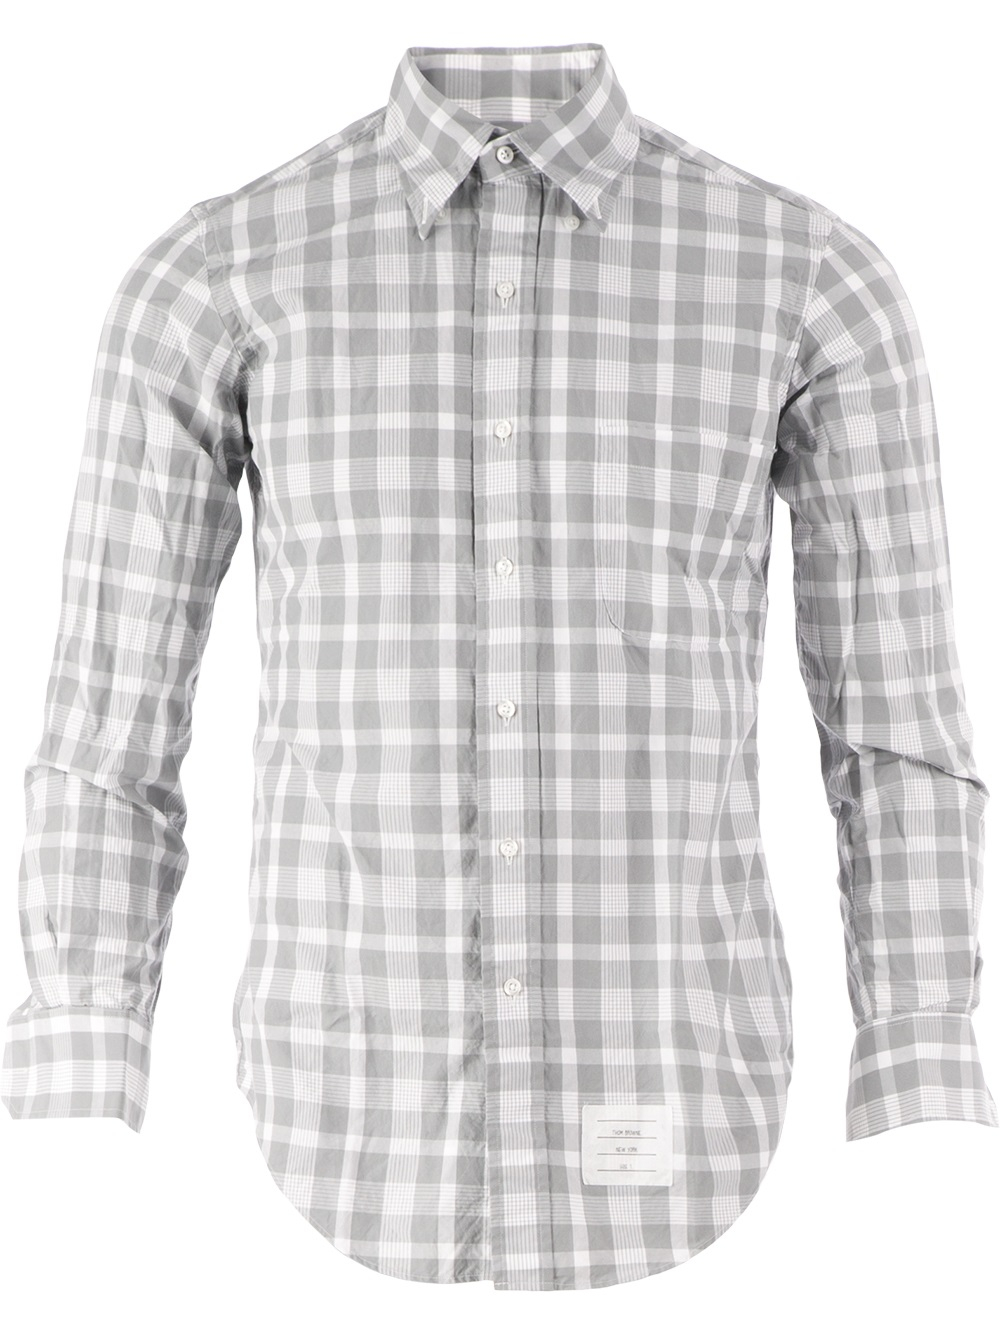 Thom browne Check Shirt in Gray for Men | Lyst